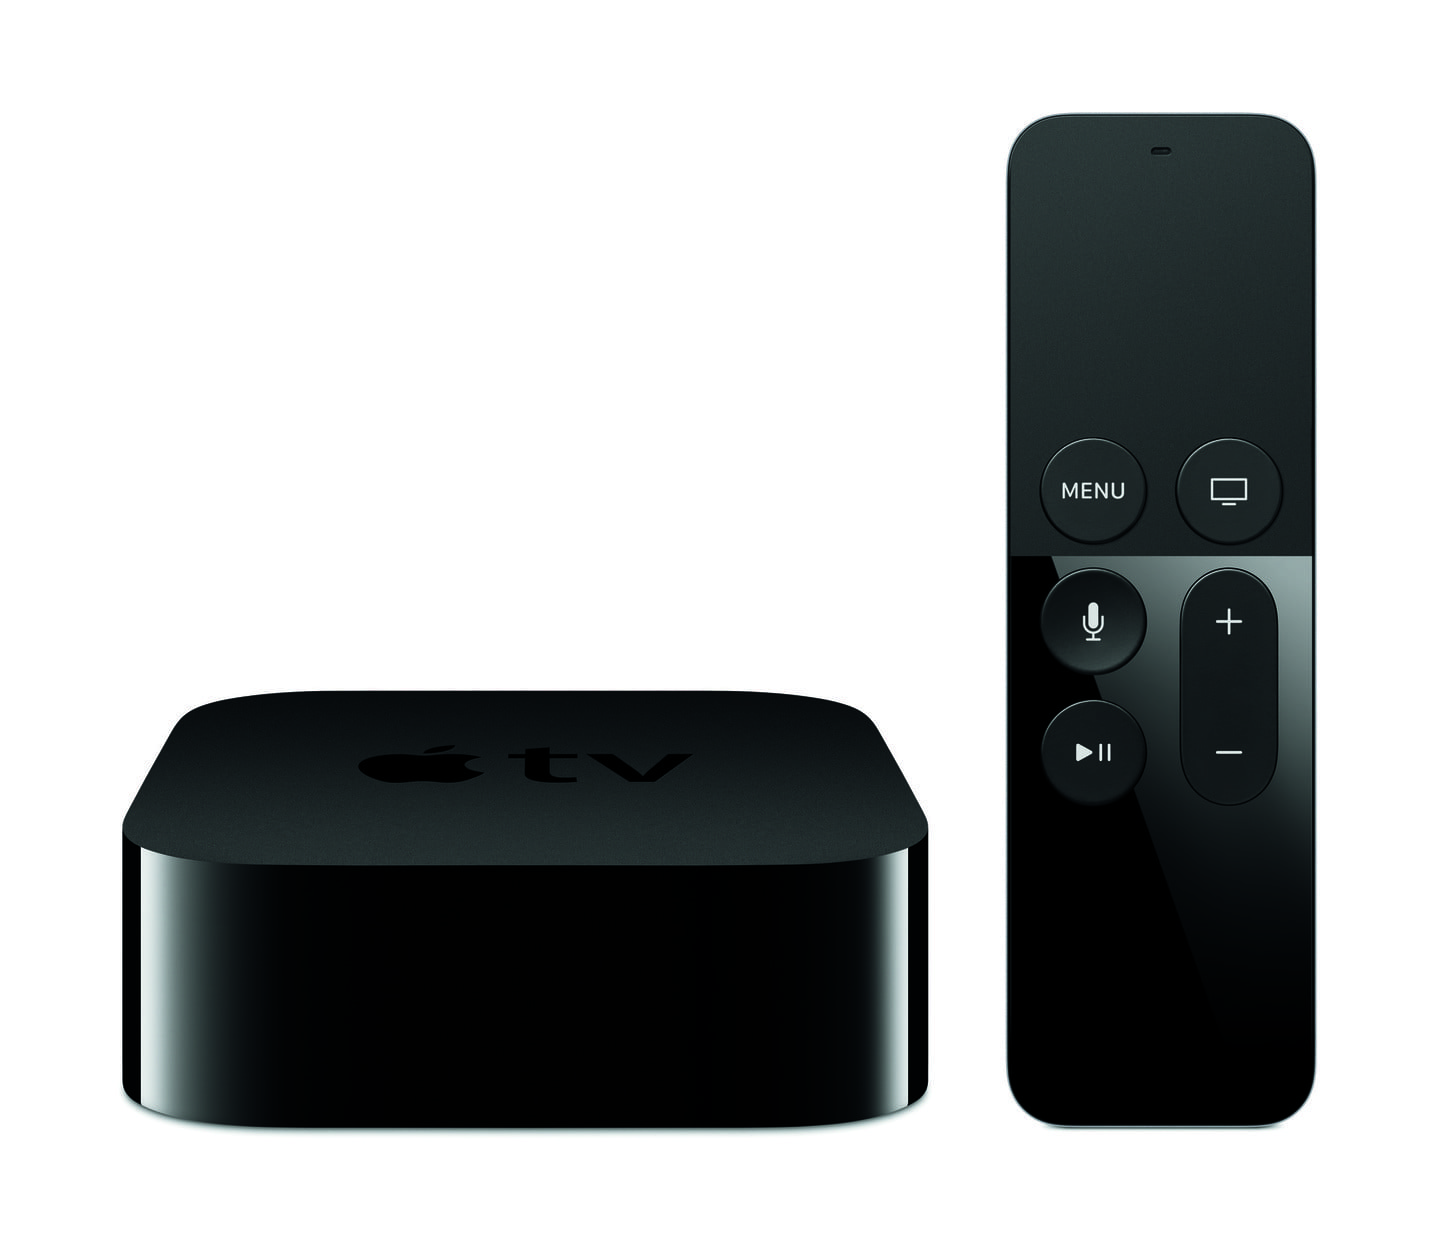 Apple TV Market Share